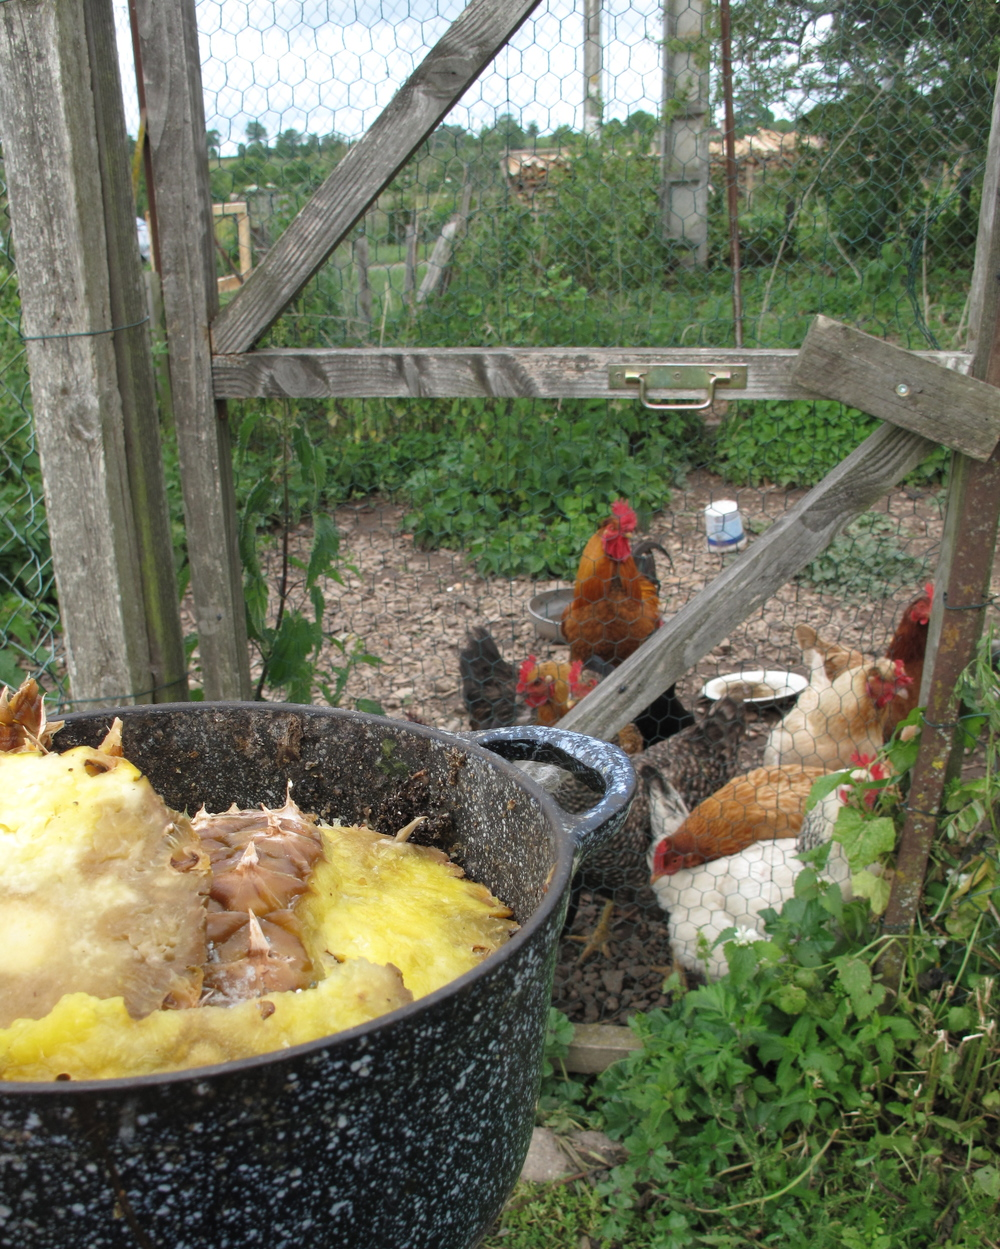 Feeding the hens in the morning with food scraps